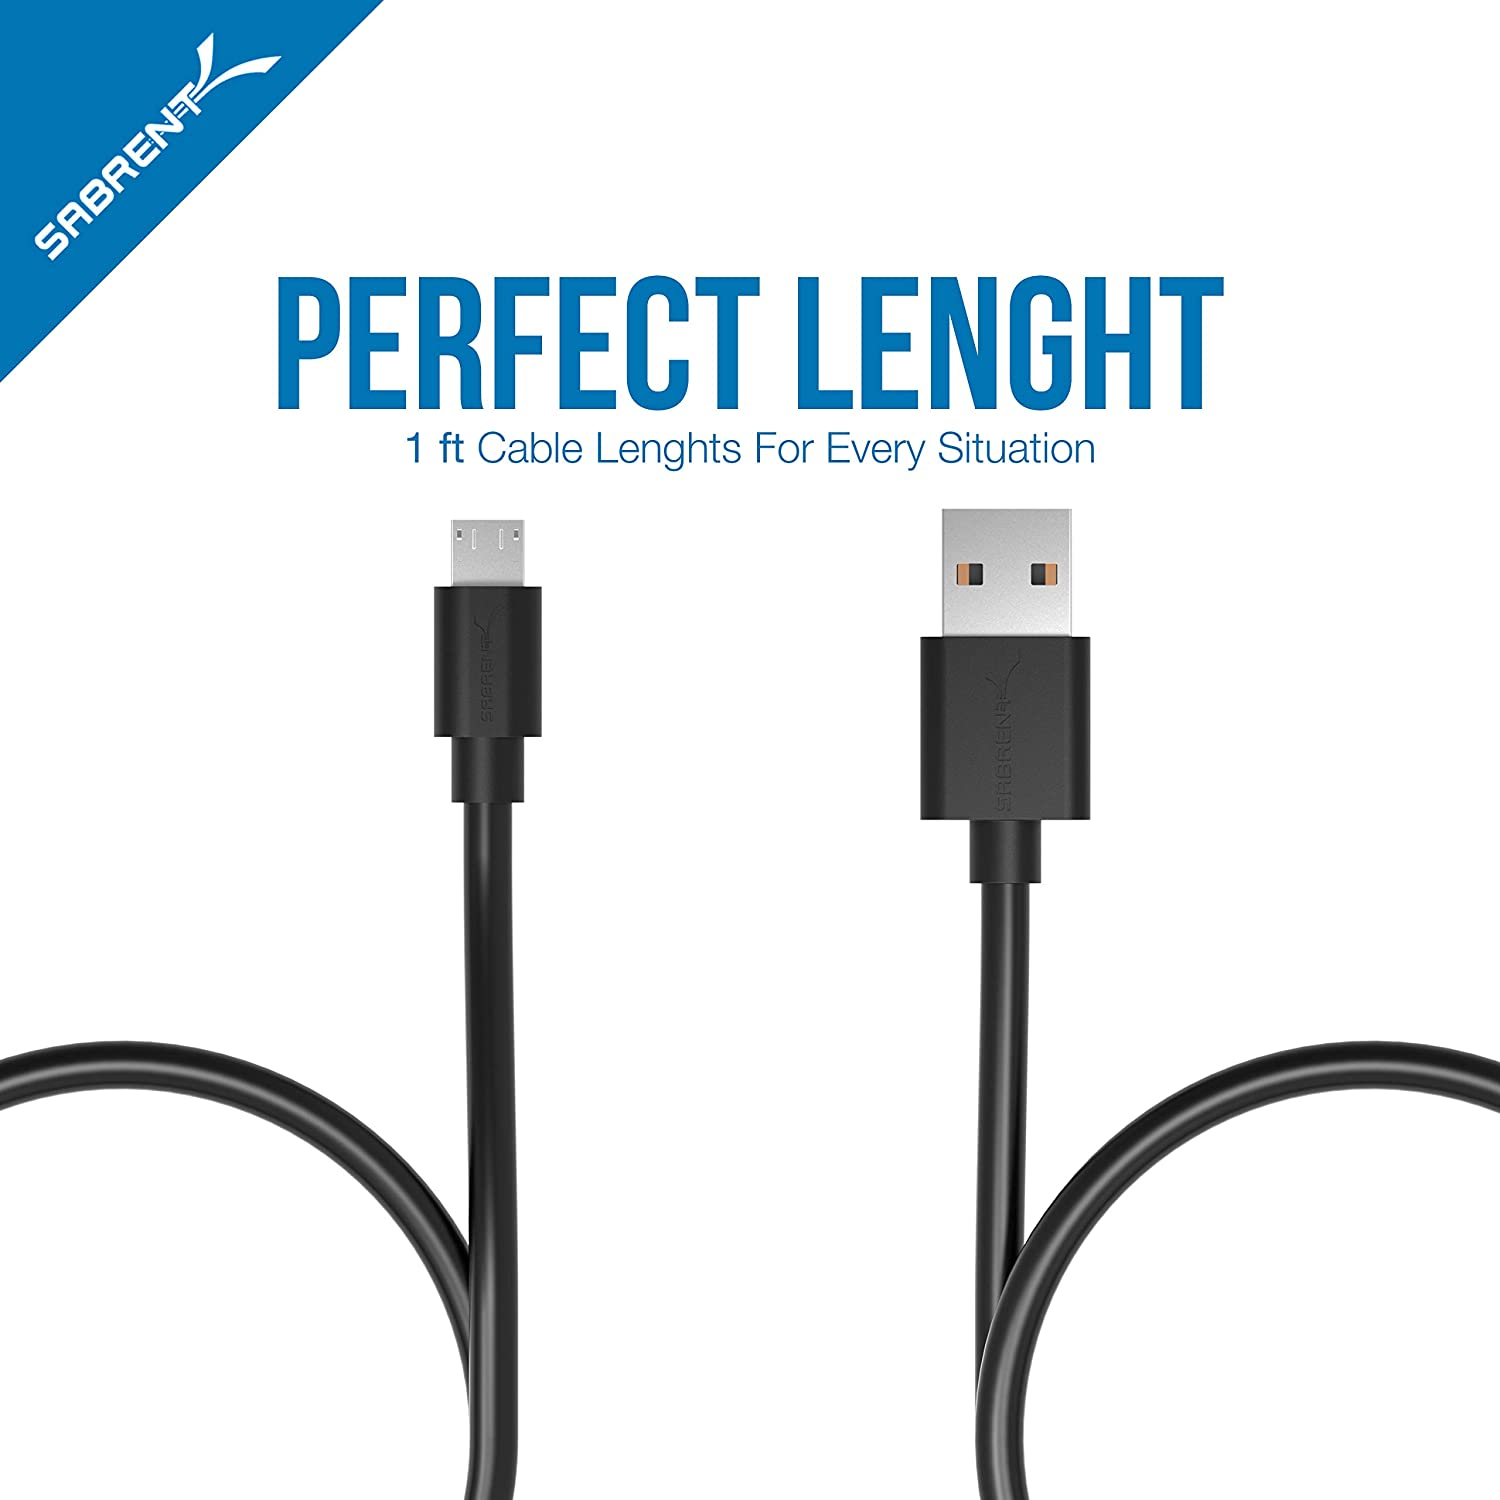 Sabrent 22 AWG Premium High Speed Micro USB to USB 2.0 Cables, 1 Ft. - Pack of 6 (CB-UM61)